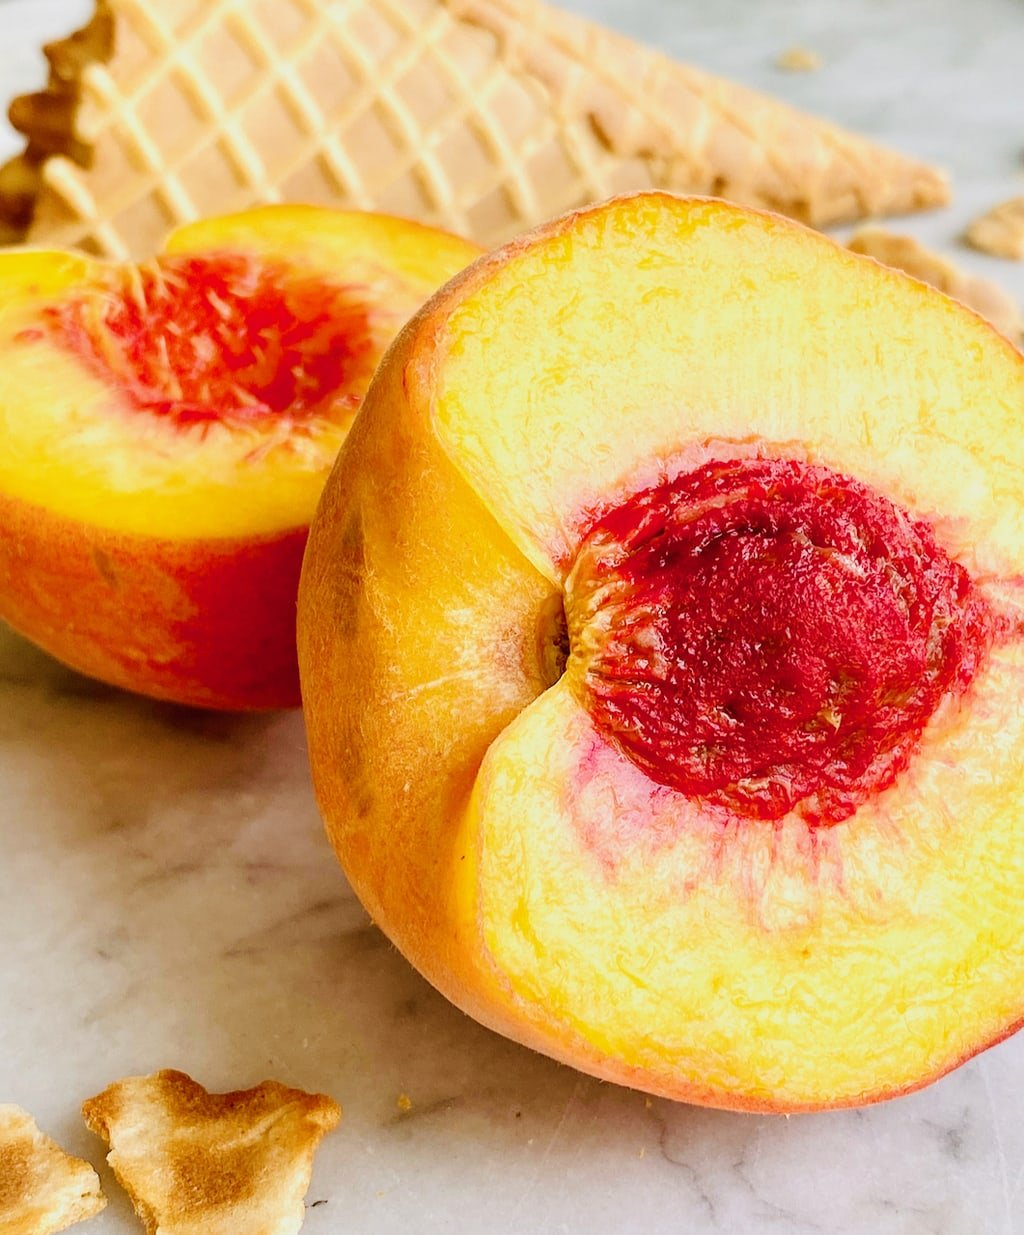 two halves of a freestone peach with waffle cone pieces behind it